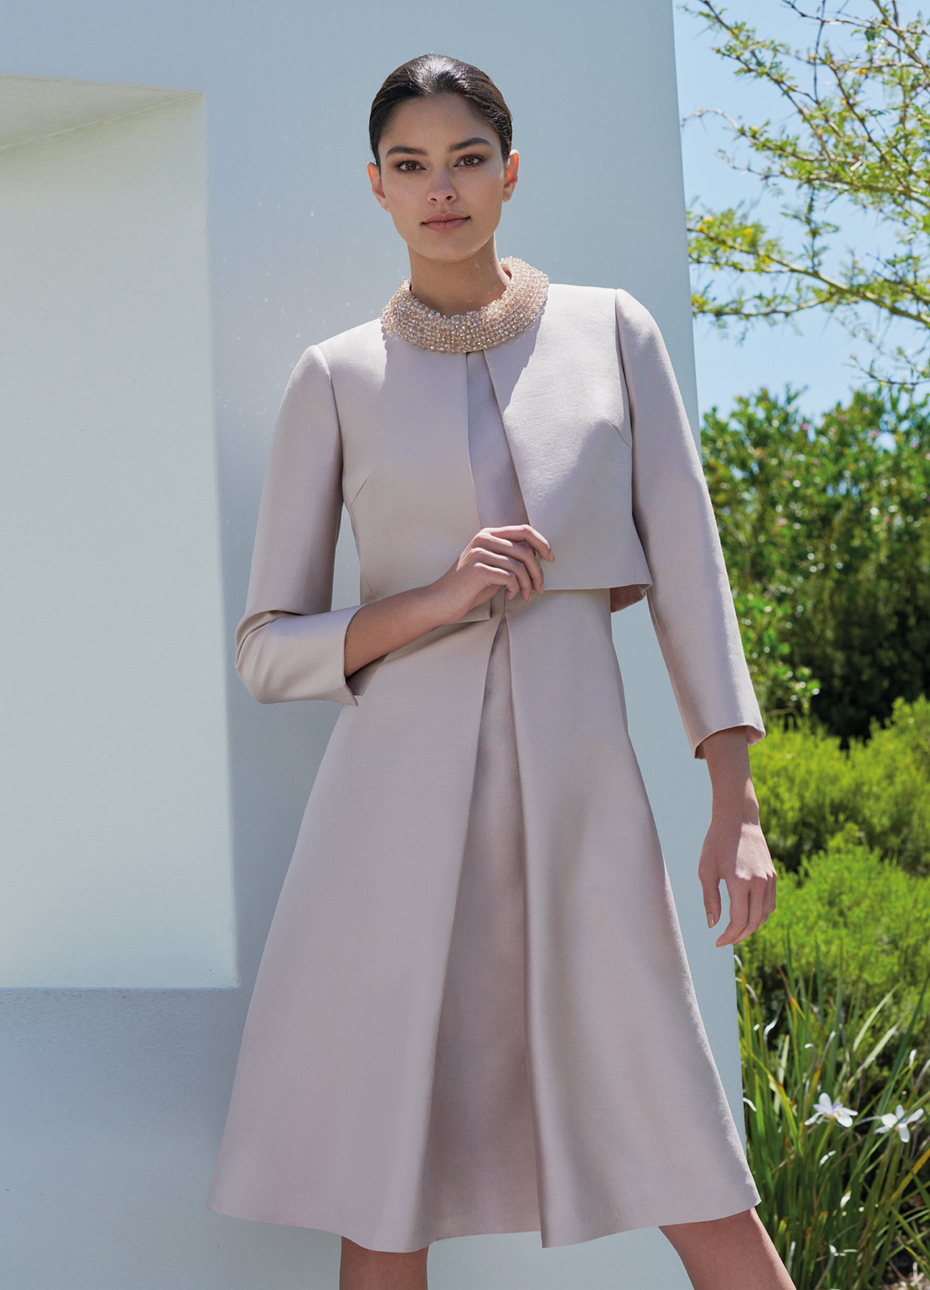 Pink occasion dress with embellished collar detail, paired with a long sleeved matching jacket by Hobbs.